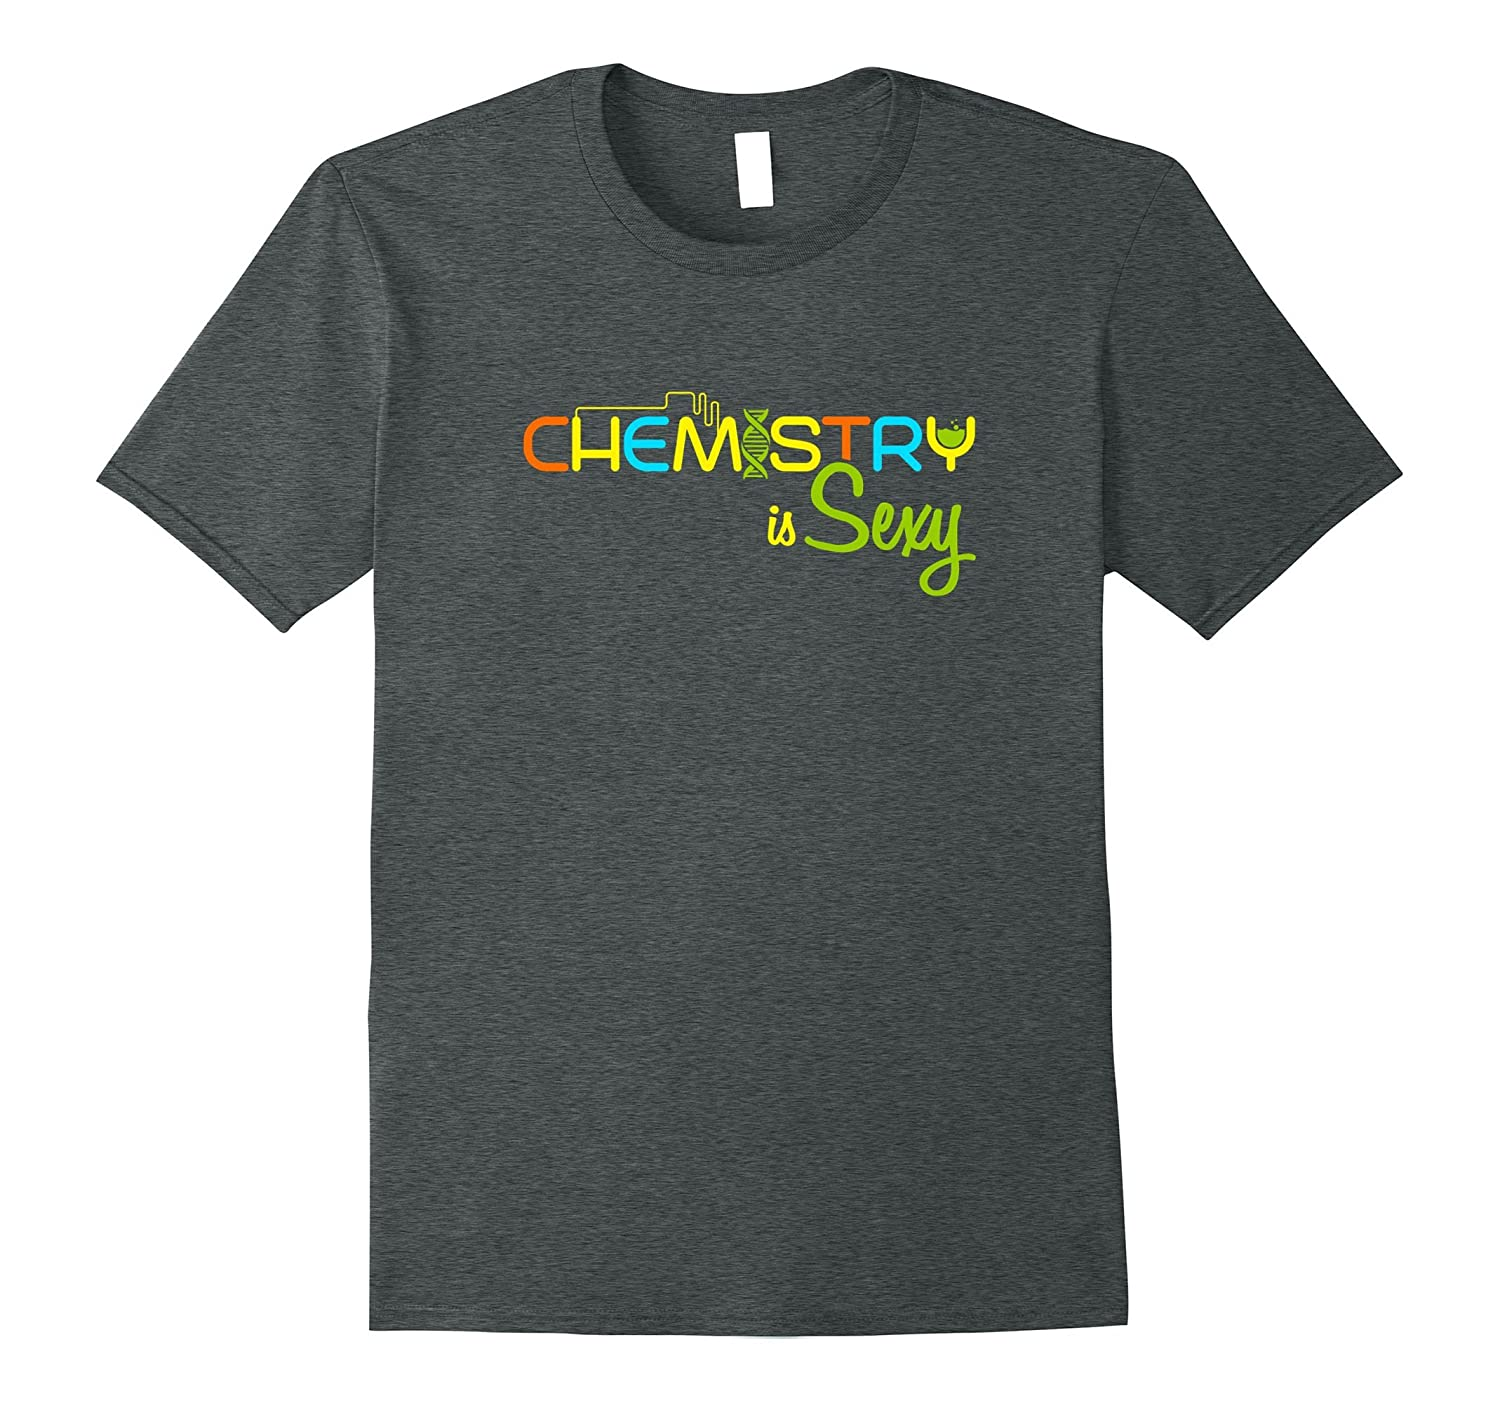 046138d5 Chemistry Is Sexy Chemists Science T-Shirt-BN – Banazatee